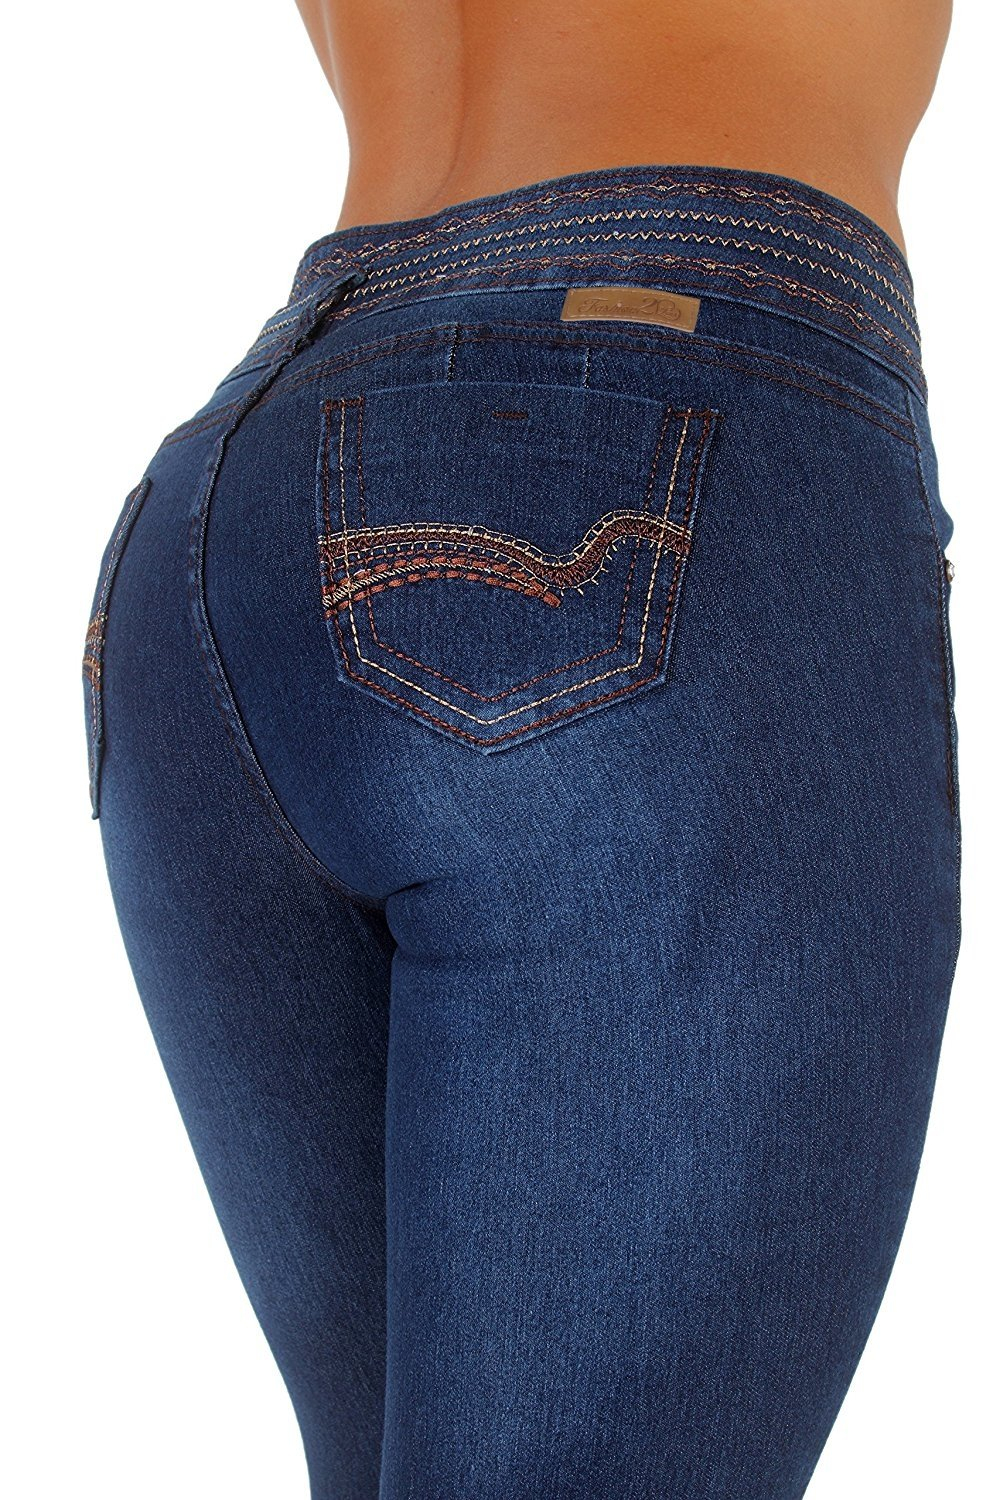 Style K117– Colombian Design, Butt Lift, Levanta Cola, Skinny Jeans in Dark Blue Size 5